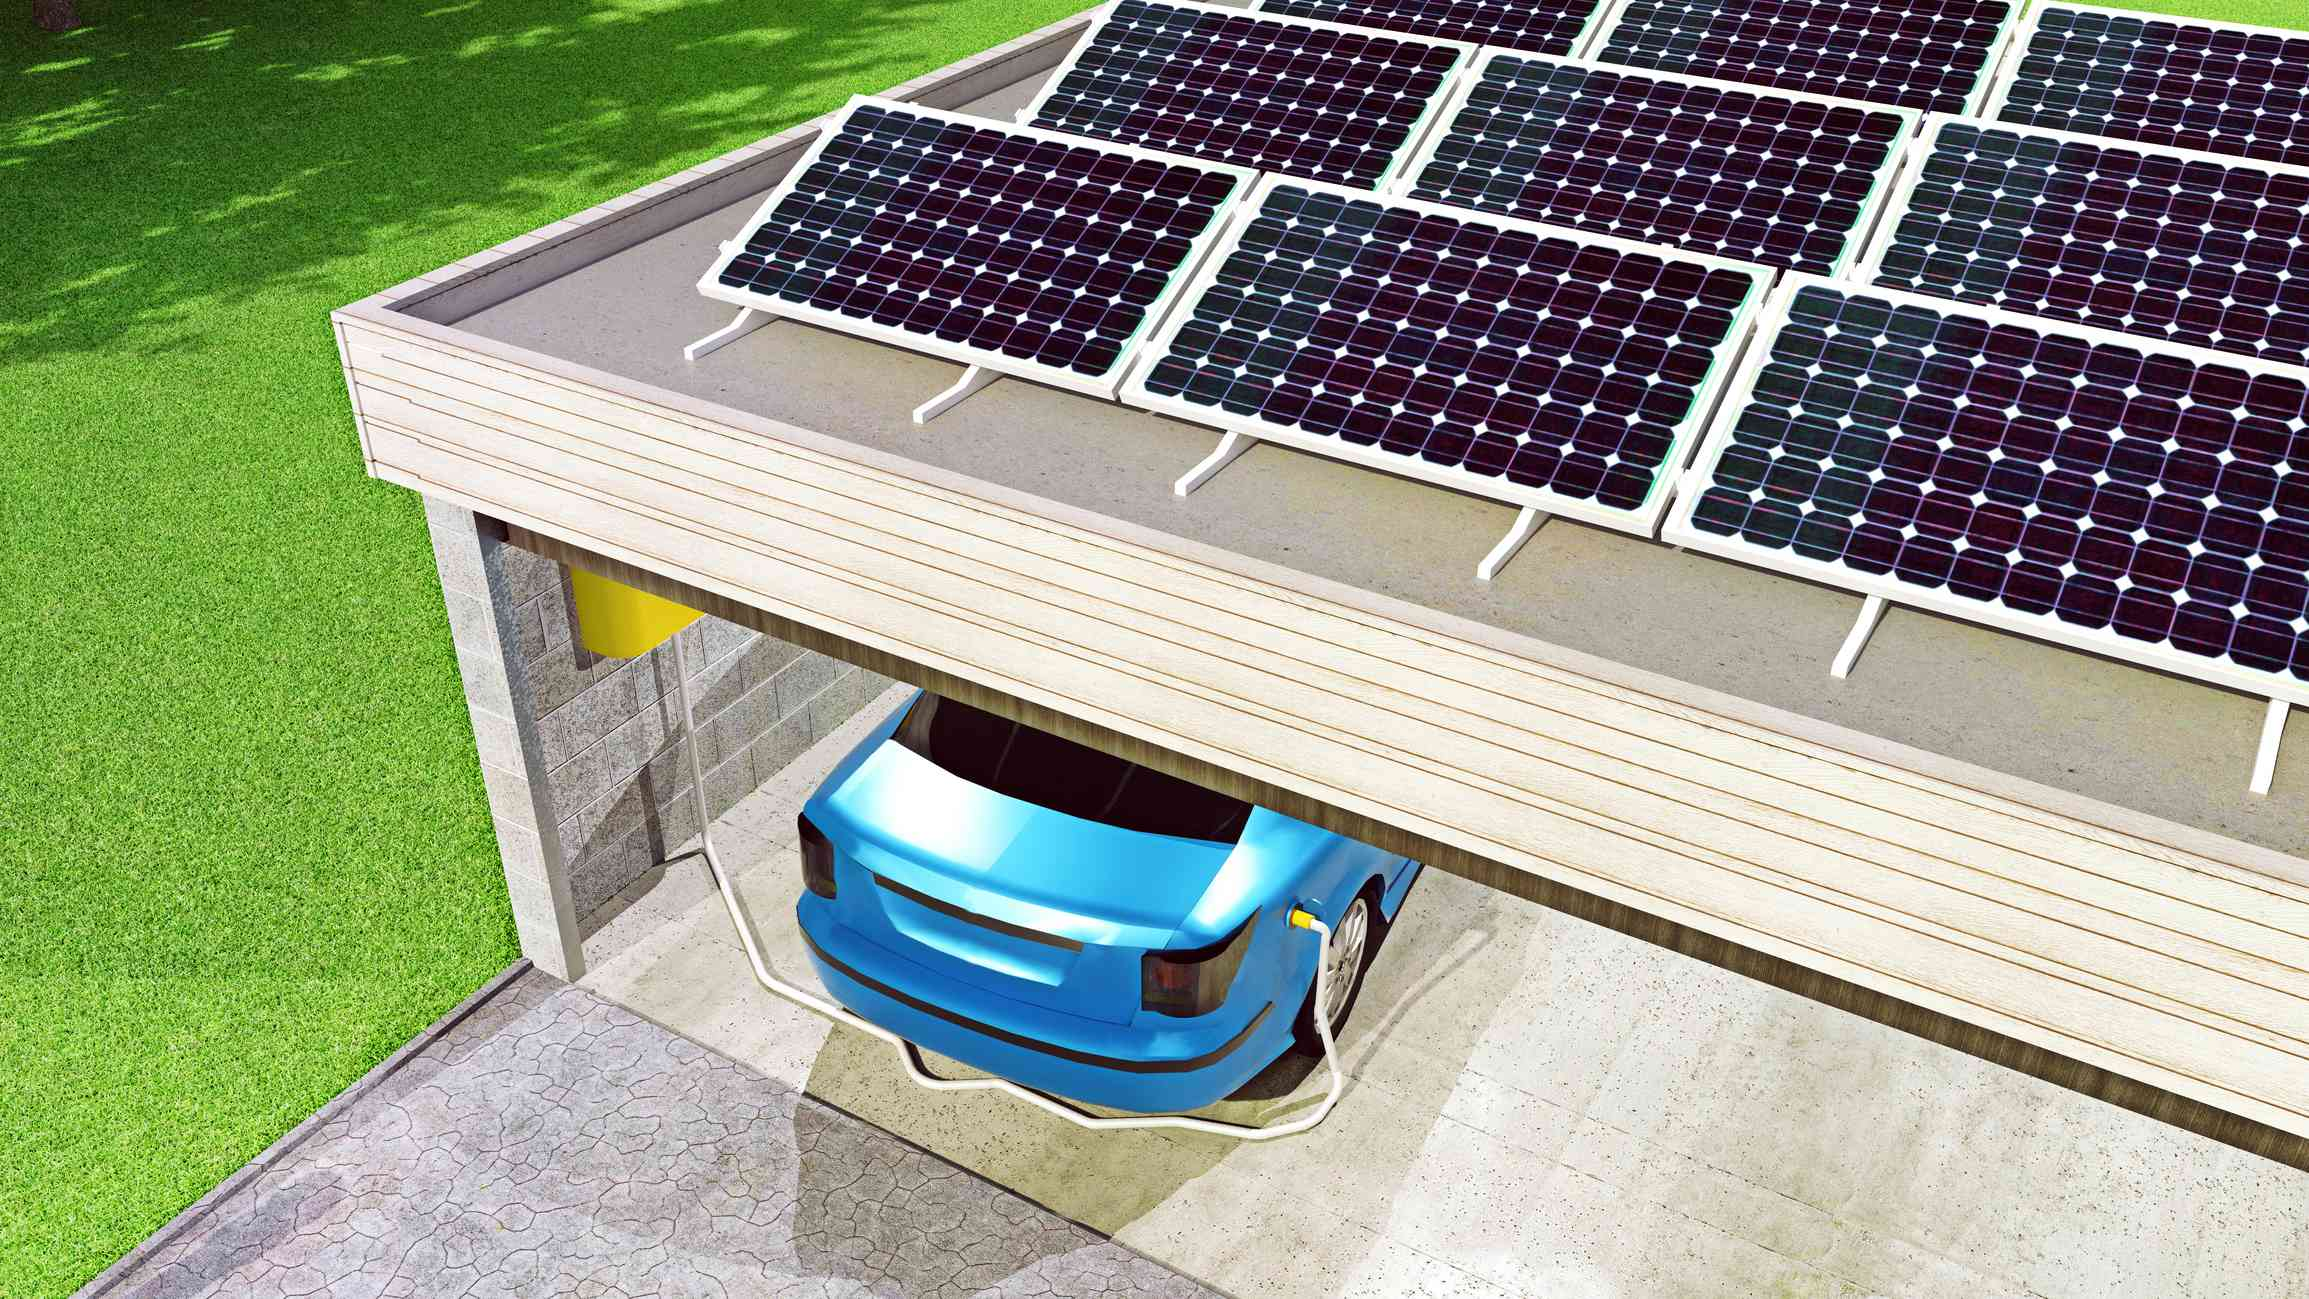 Rooftop solar system on garage with electric vehicle charging